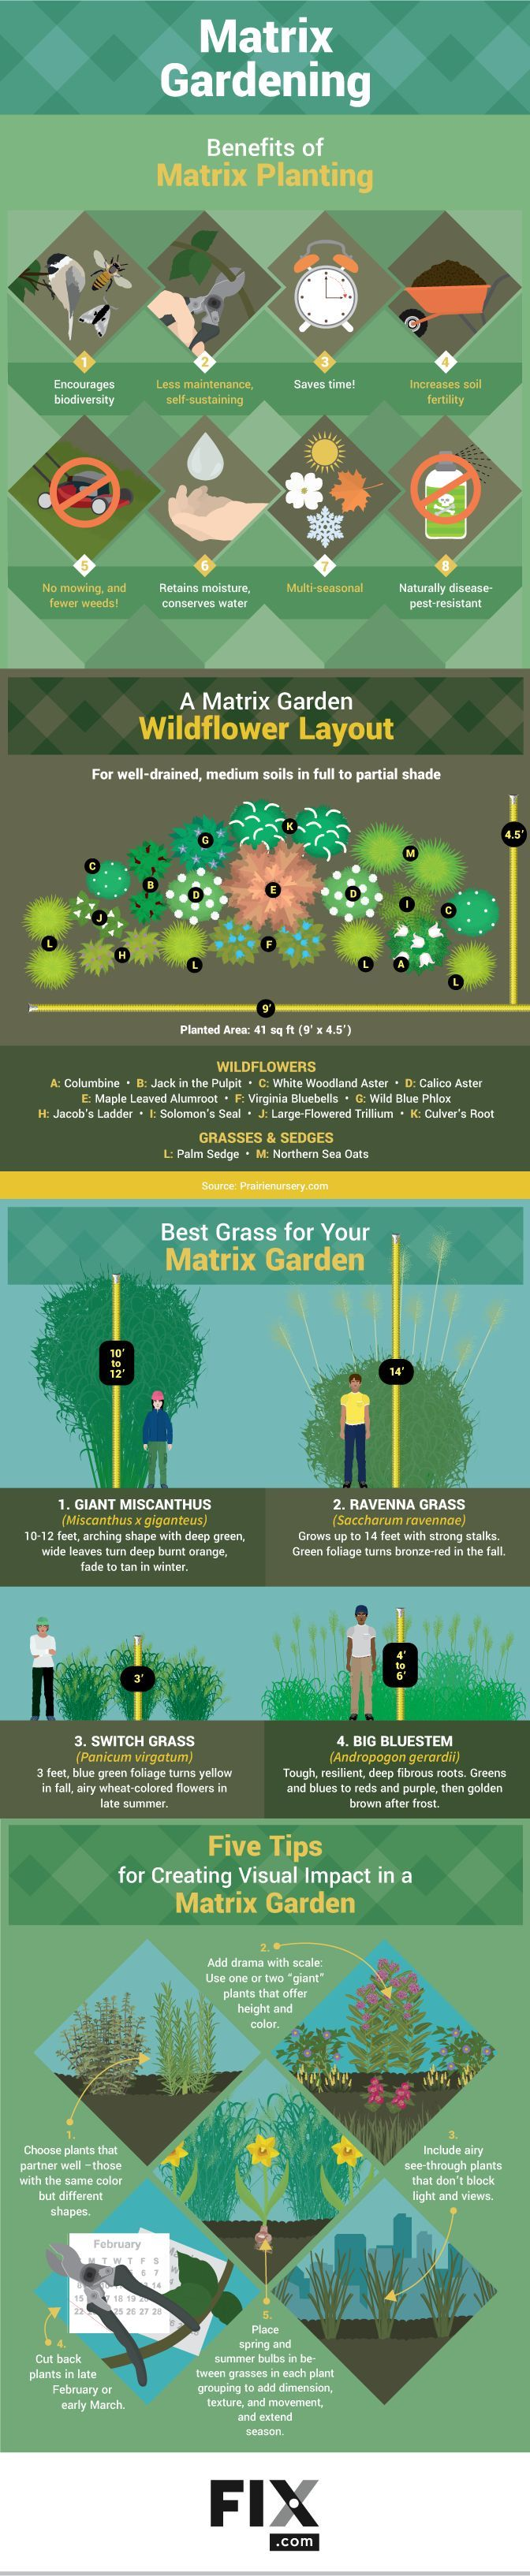 Check out Self-Sustaining Garden: Beginners Guide to Matrix Gardening [Infographic] at https://homesteading.com/beginners-guide-matrix-gardening/